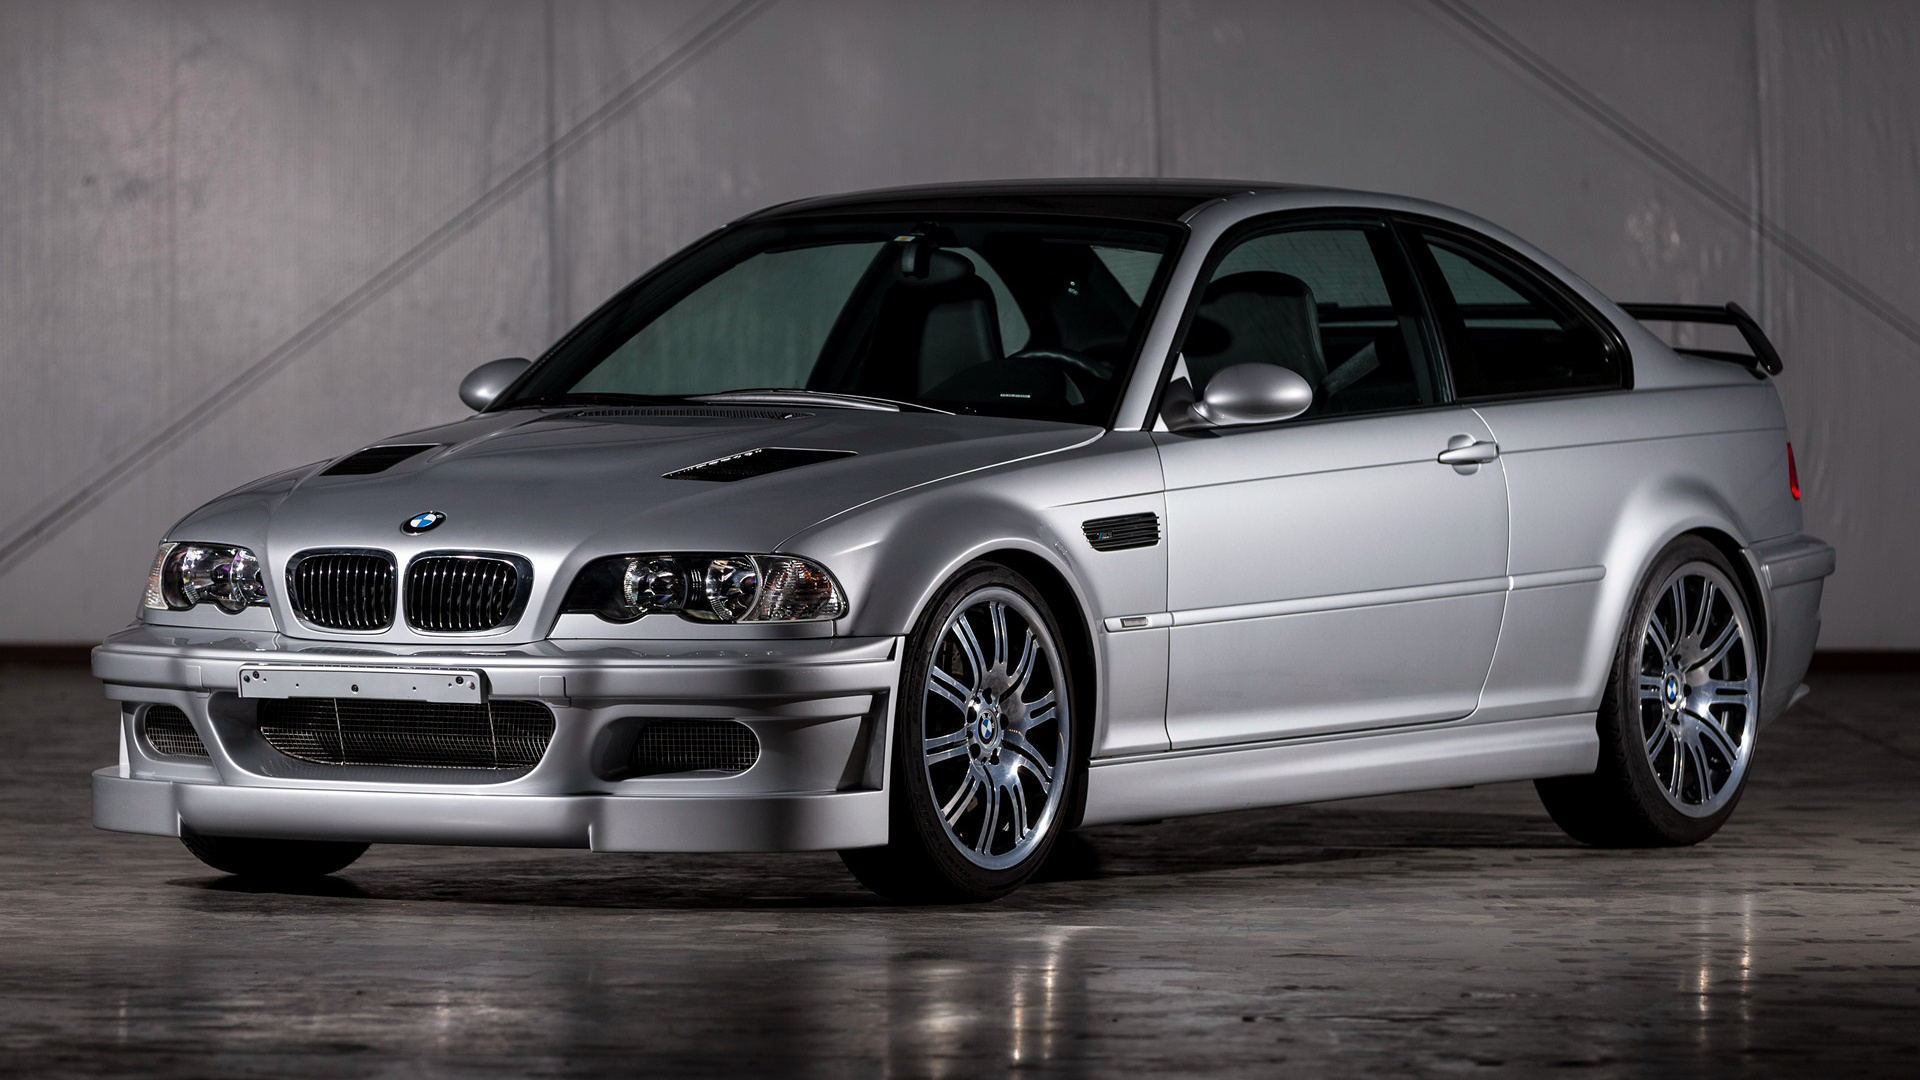 bmw m3 gtr road version (2001) wallpapers and hd images - car pixel